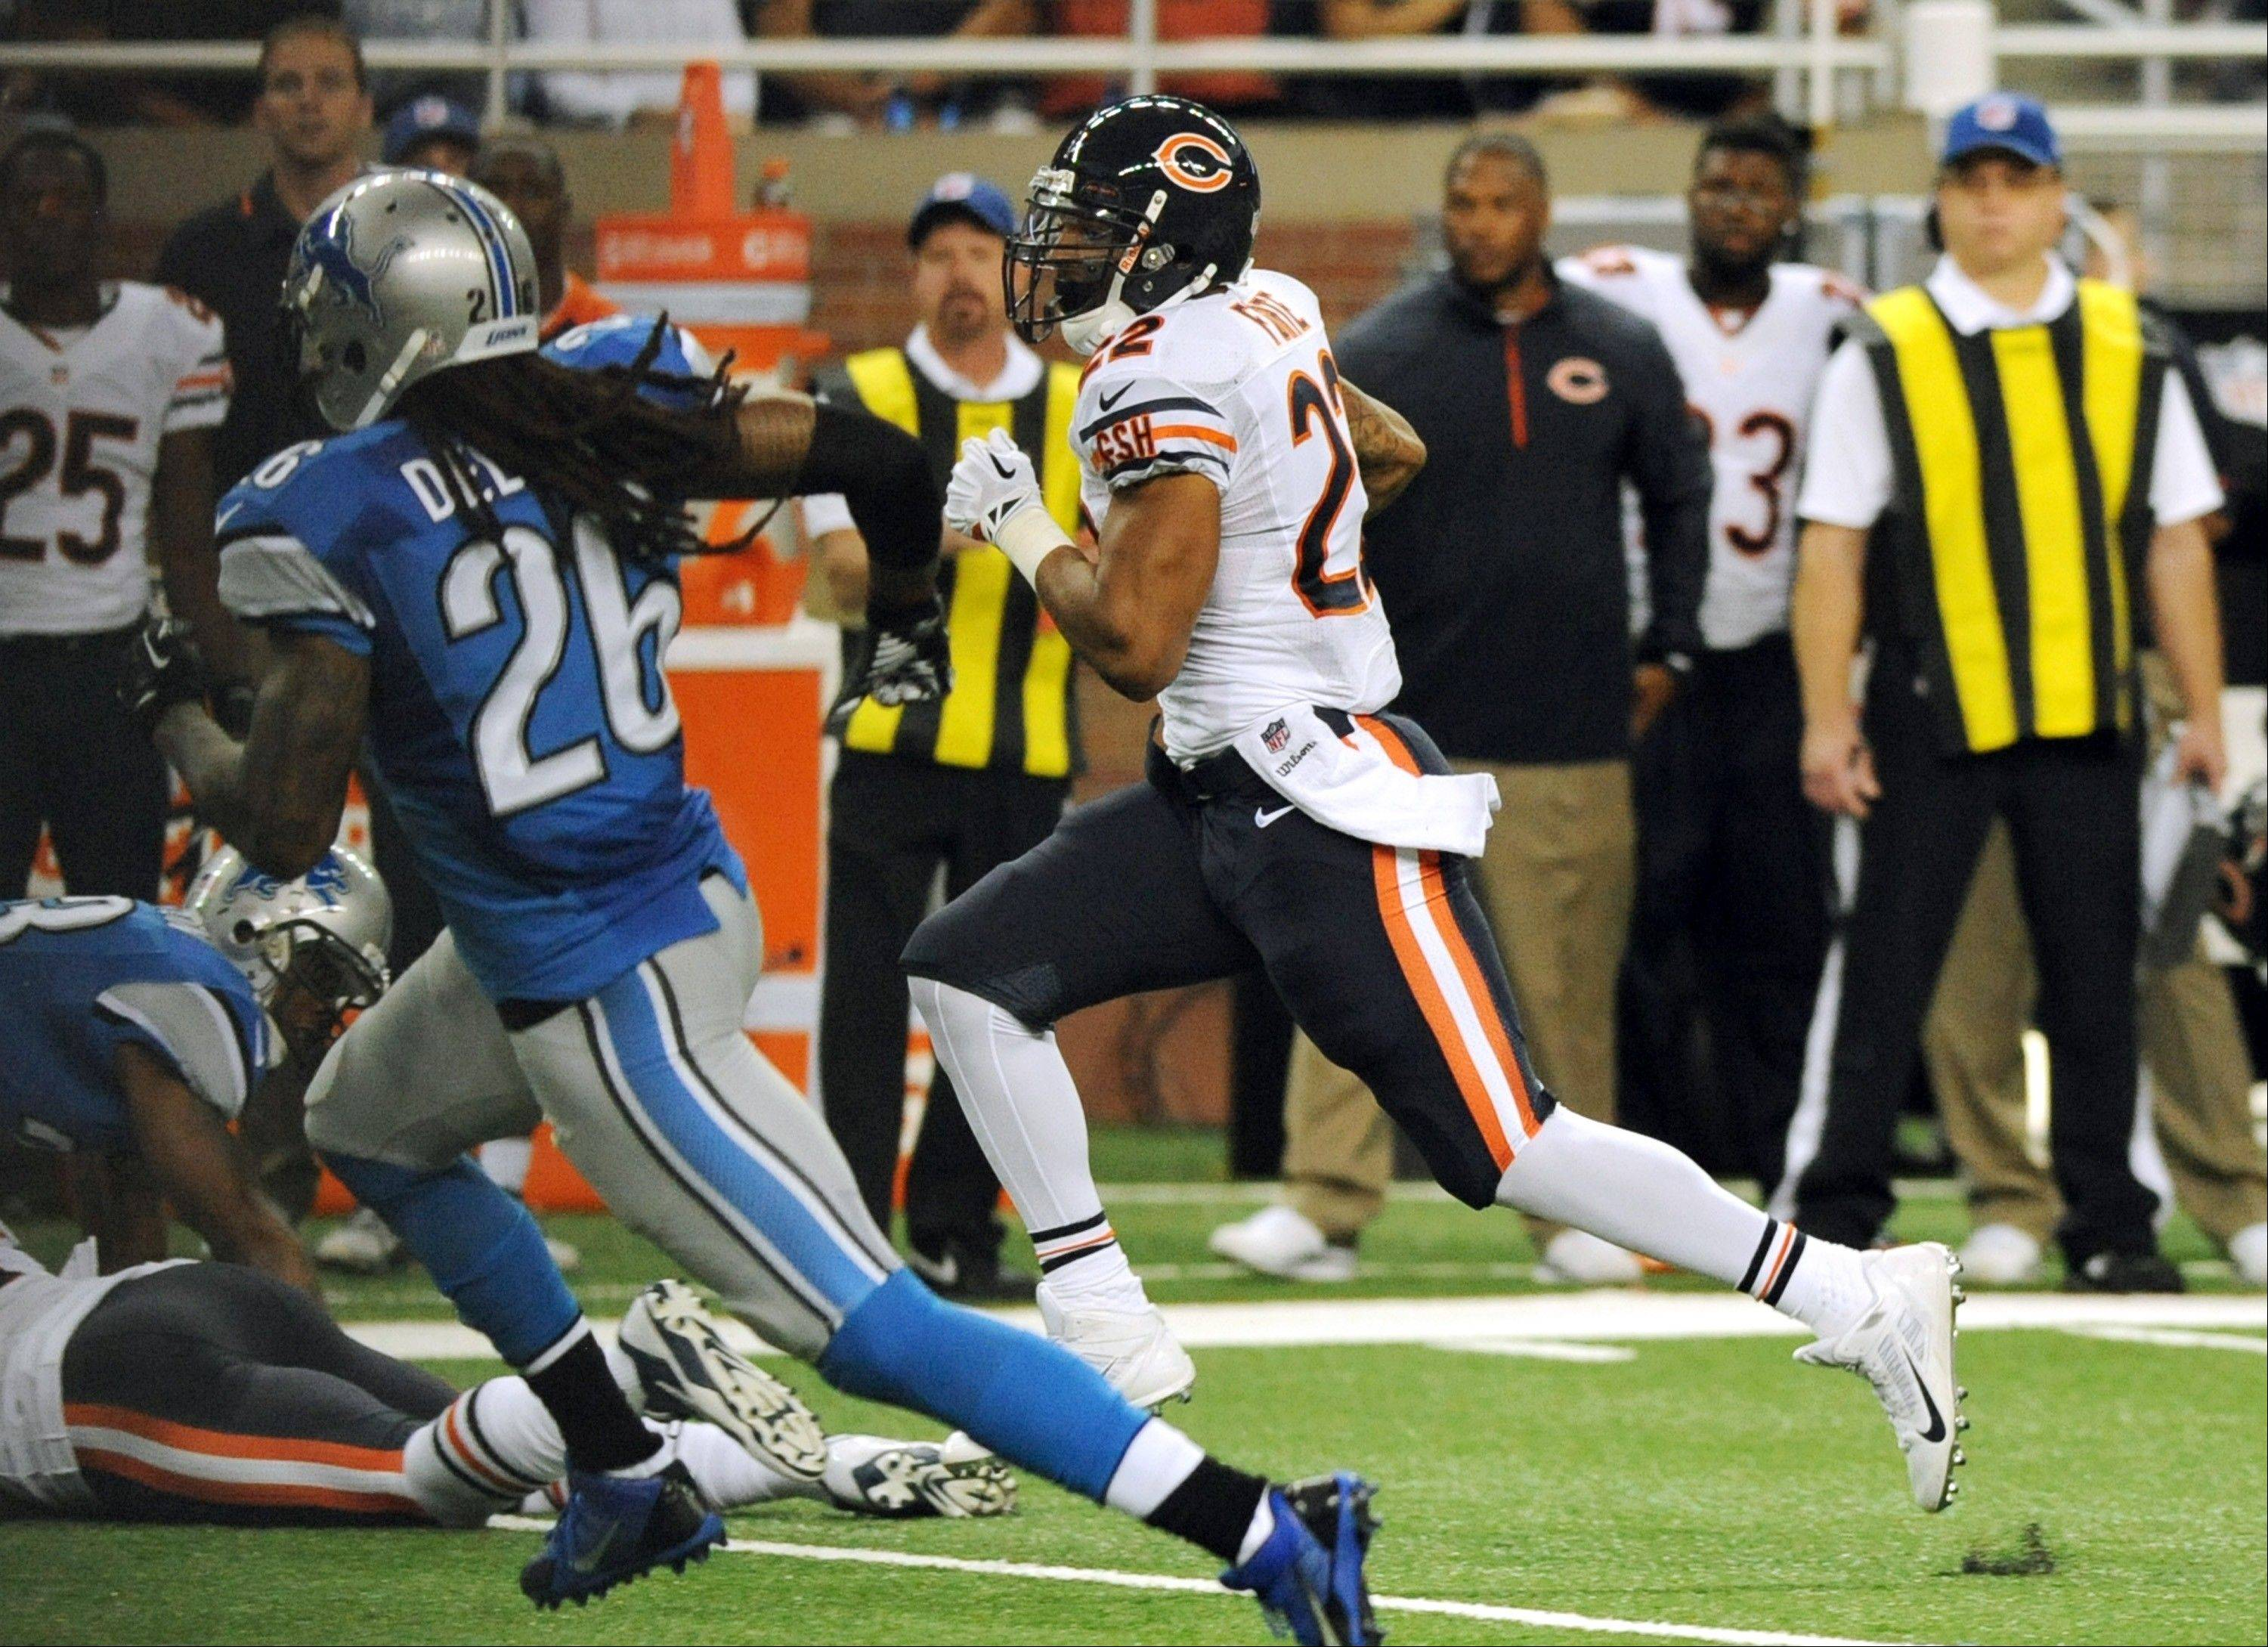 Chicago Bears running back Matt Forte (22) breaks for a 53-yard touchdown during the second quarter of an NFL football game against the Detroit Lions at Ford Field in Detroit.